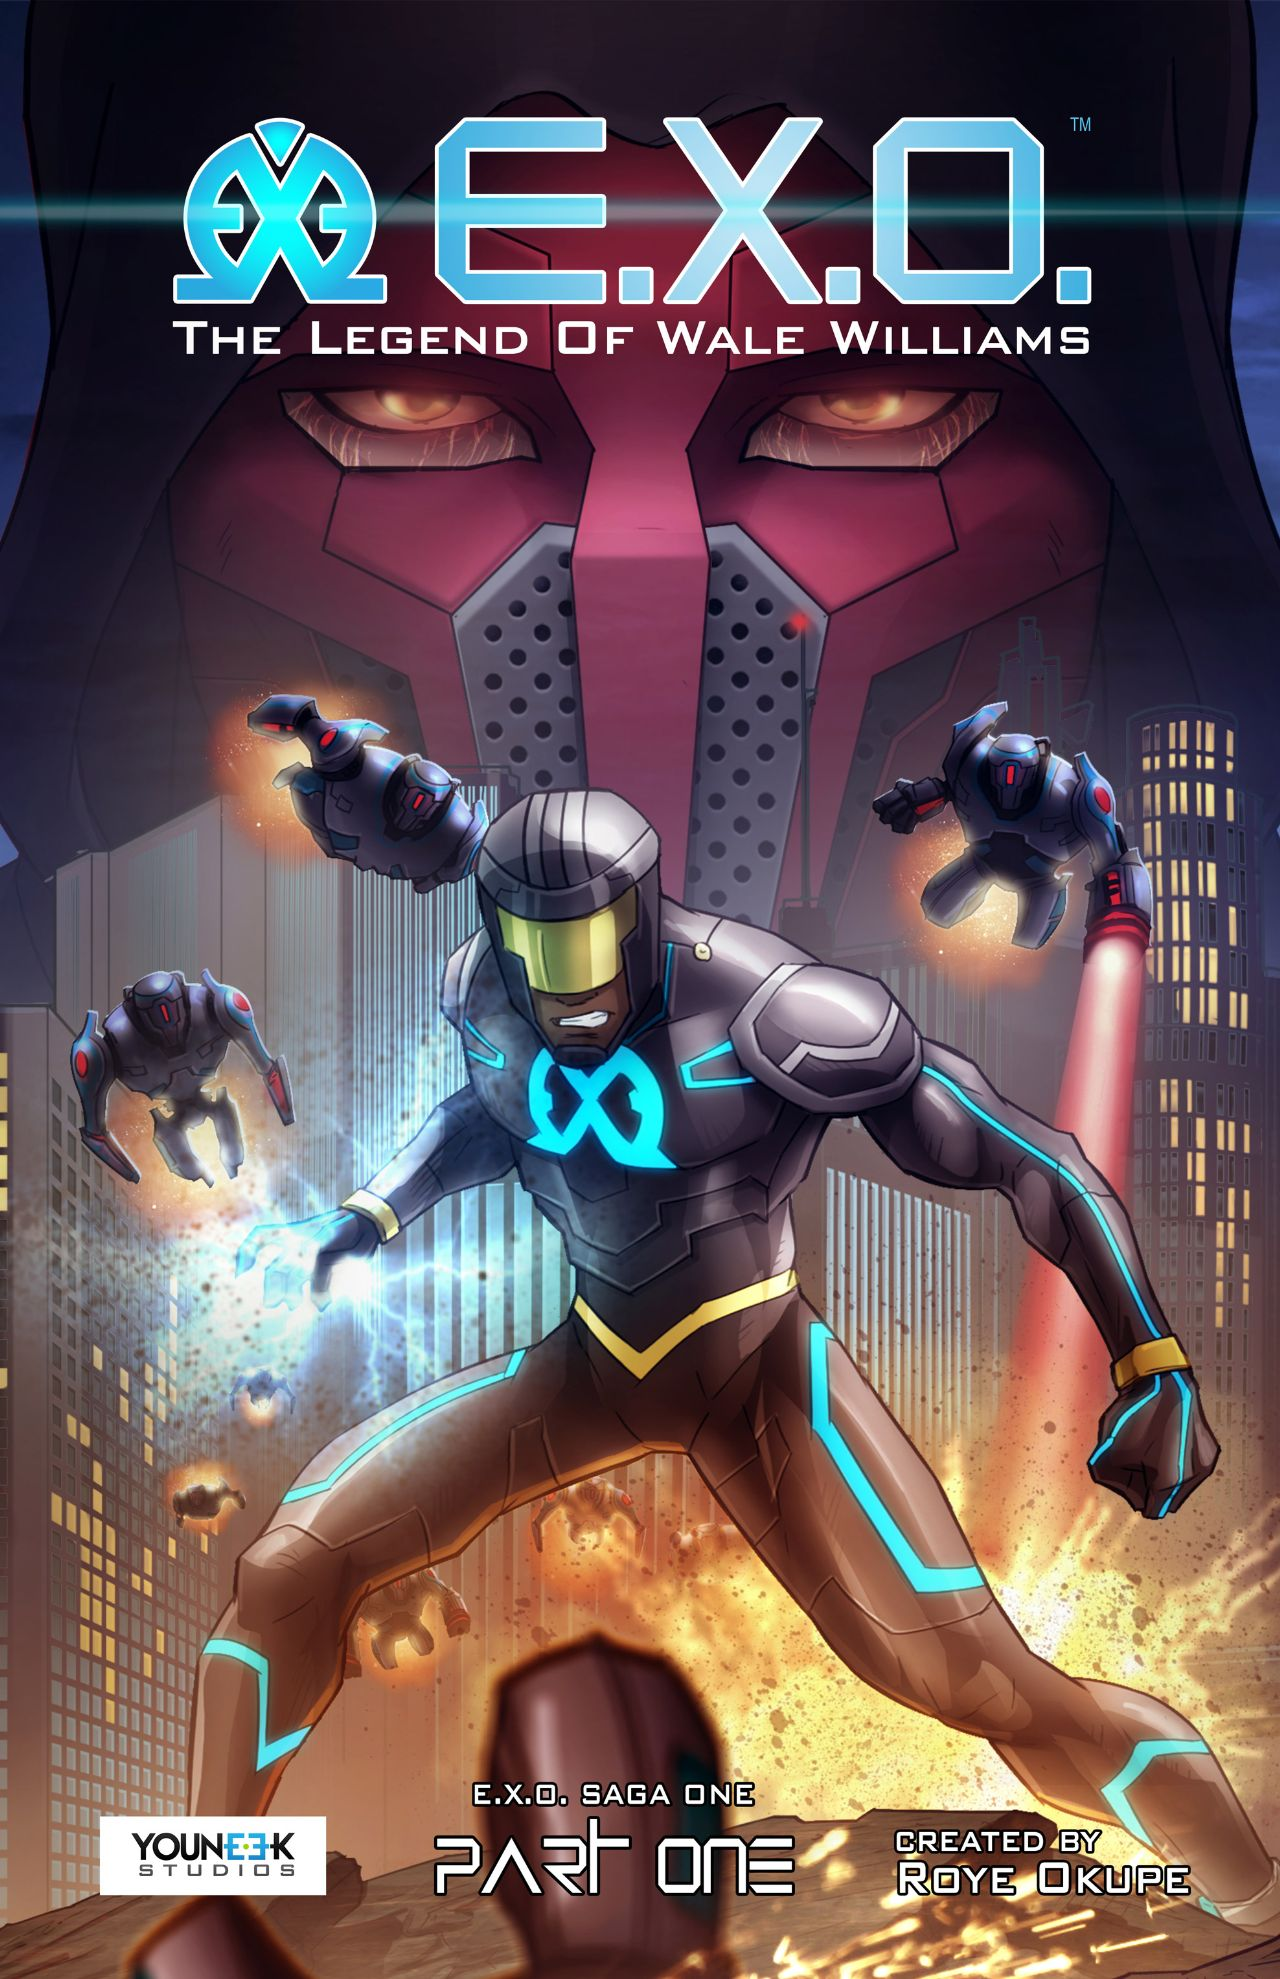 E.X.O. Legend of Wale Williams by Roye Okupe